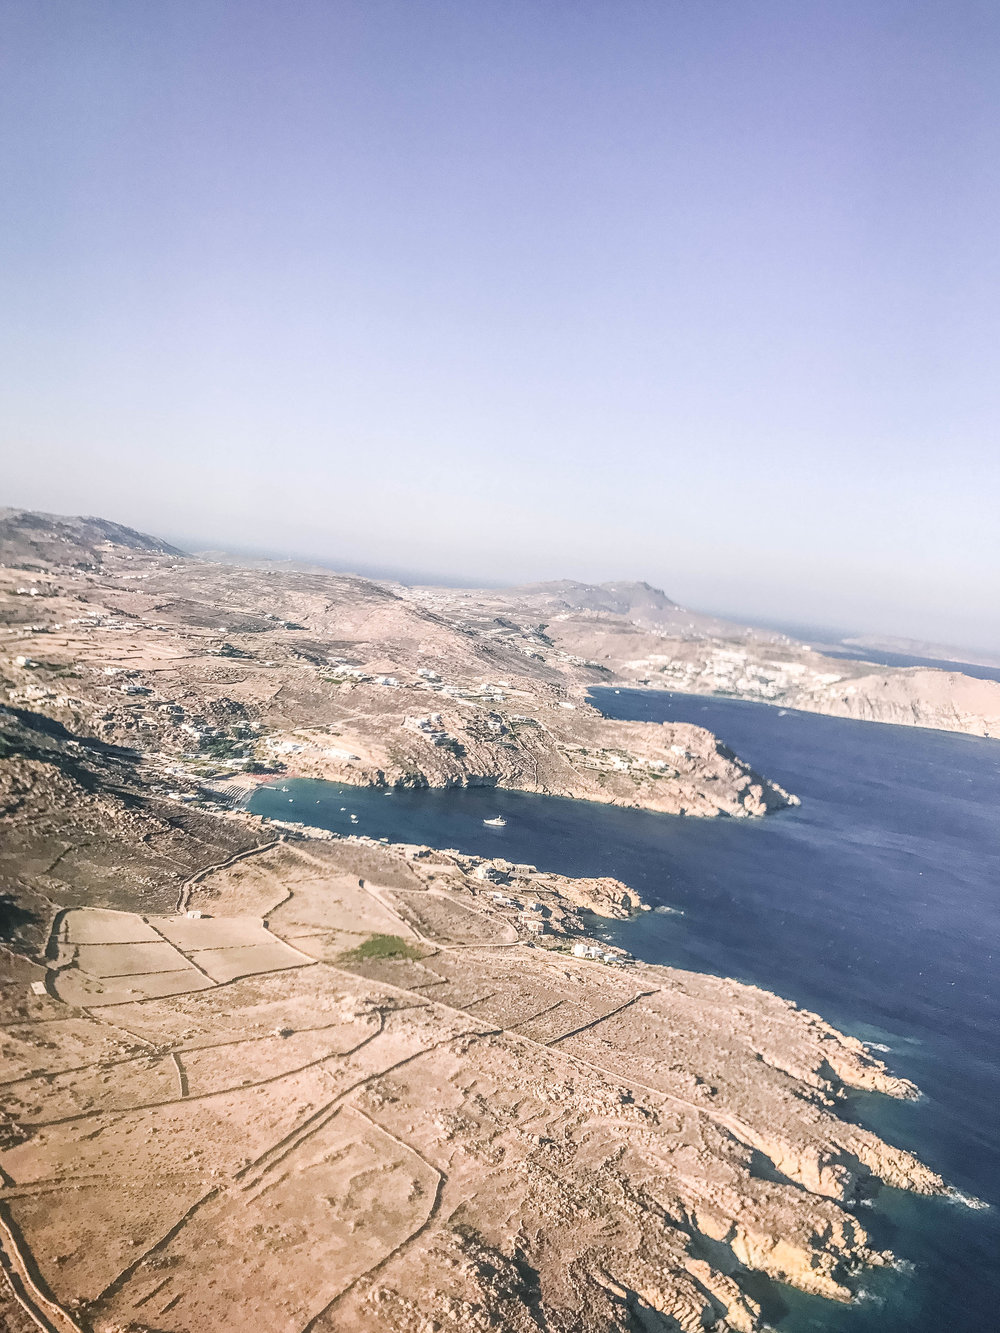 mykonos,greece - the view from the plane is where the trip begins. follow my mykonos adventures through these photos